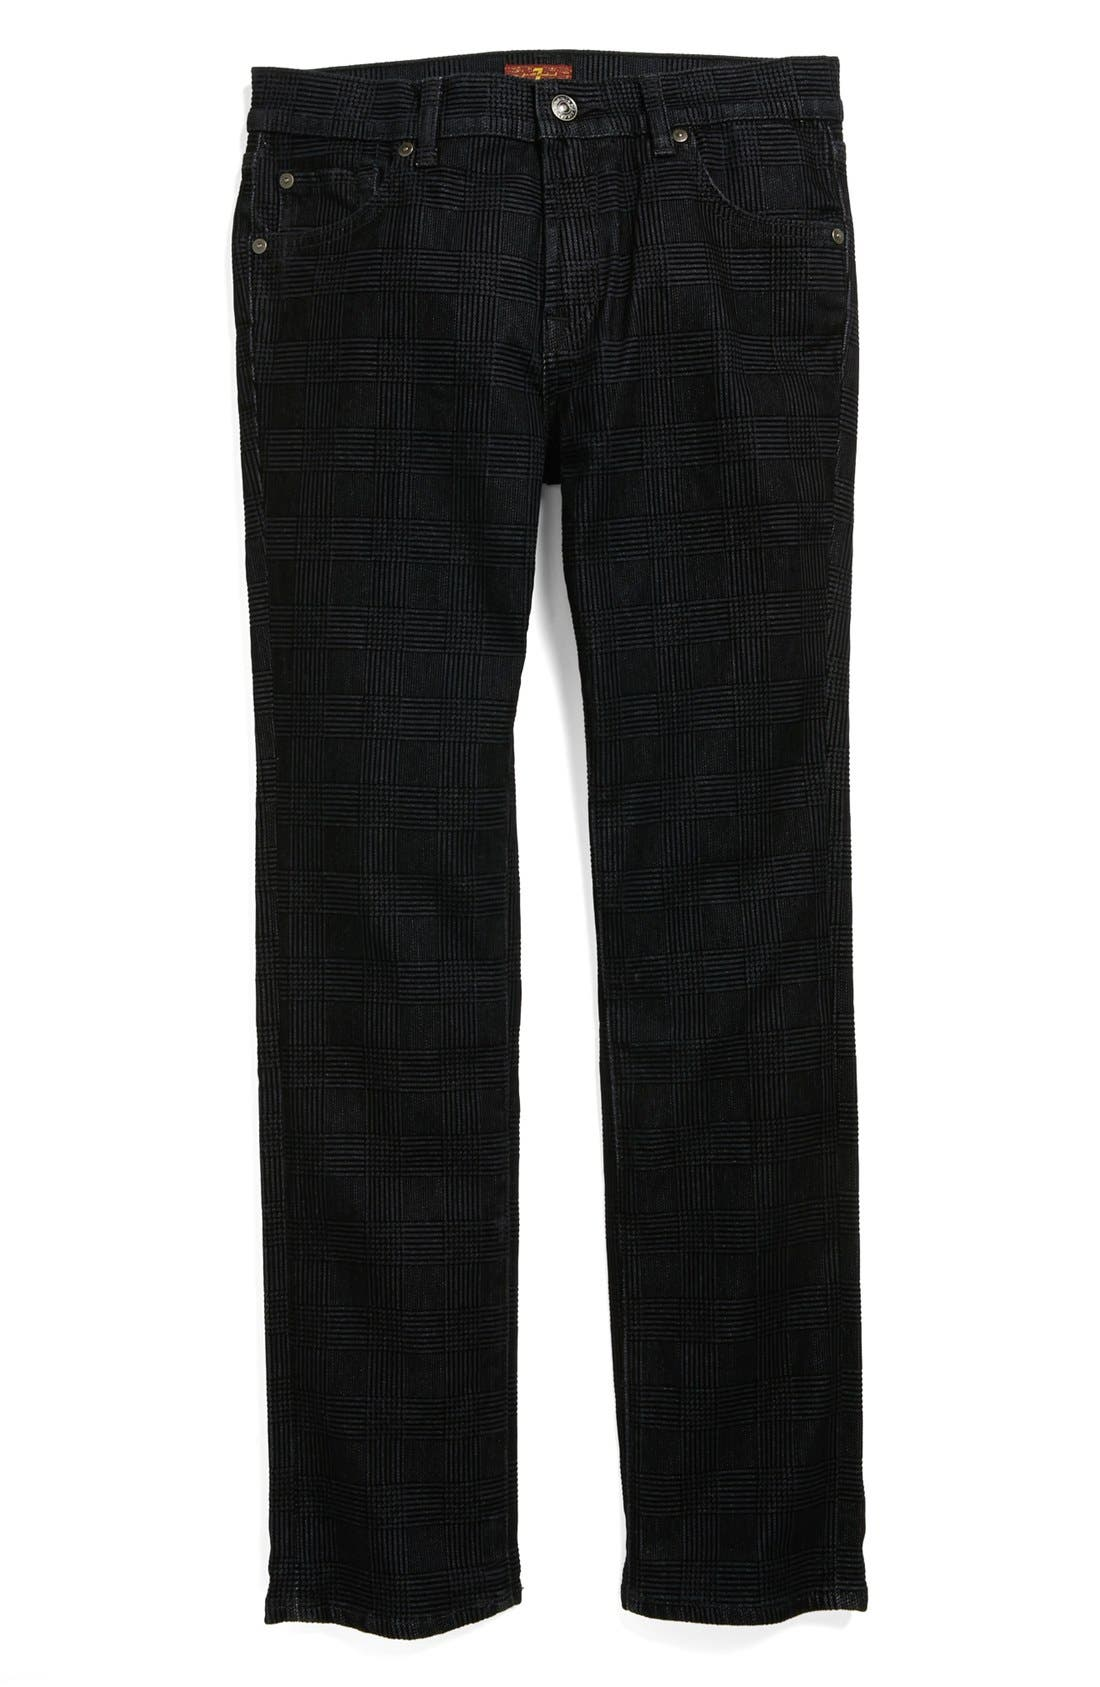 Alternate Image 1 Selected - 7 For All Mankind® 'Slimmy' Straight Leg Jeans (Big Boys)